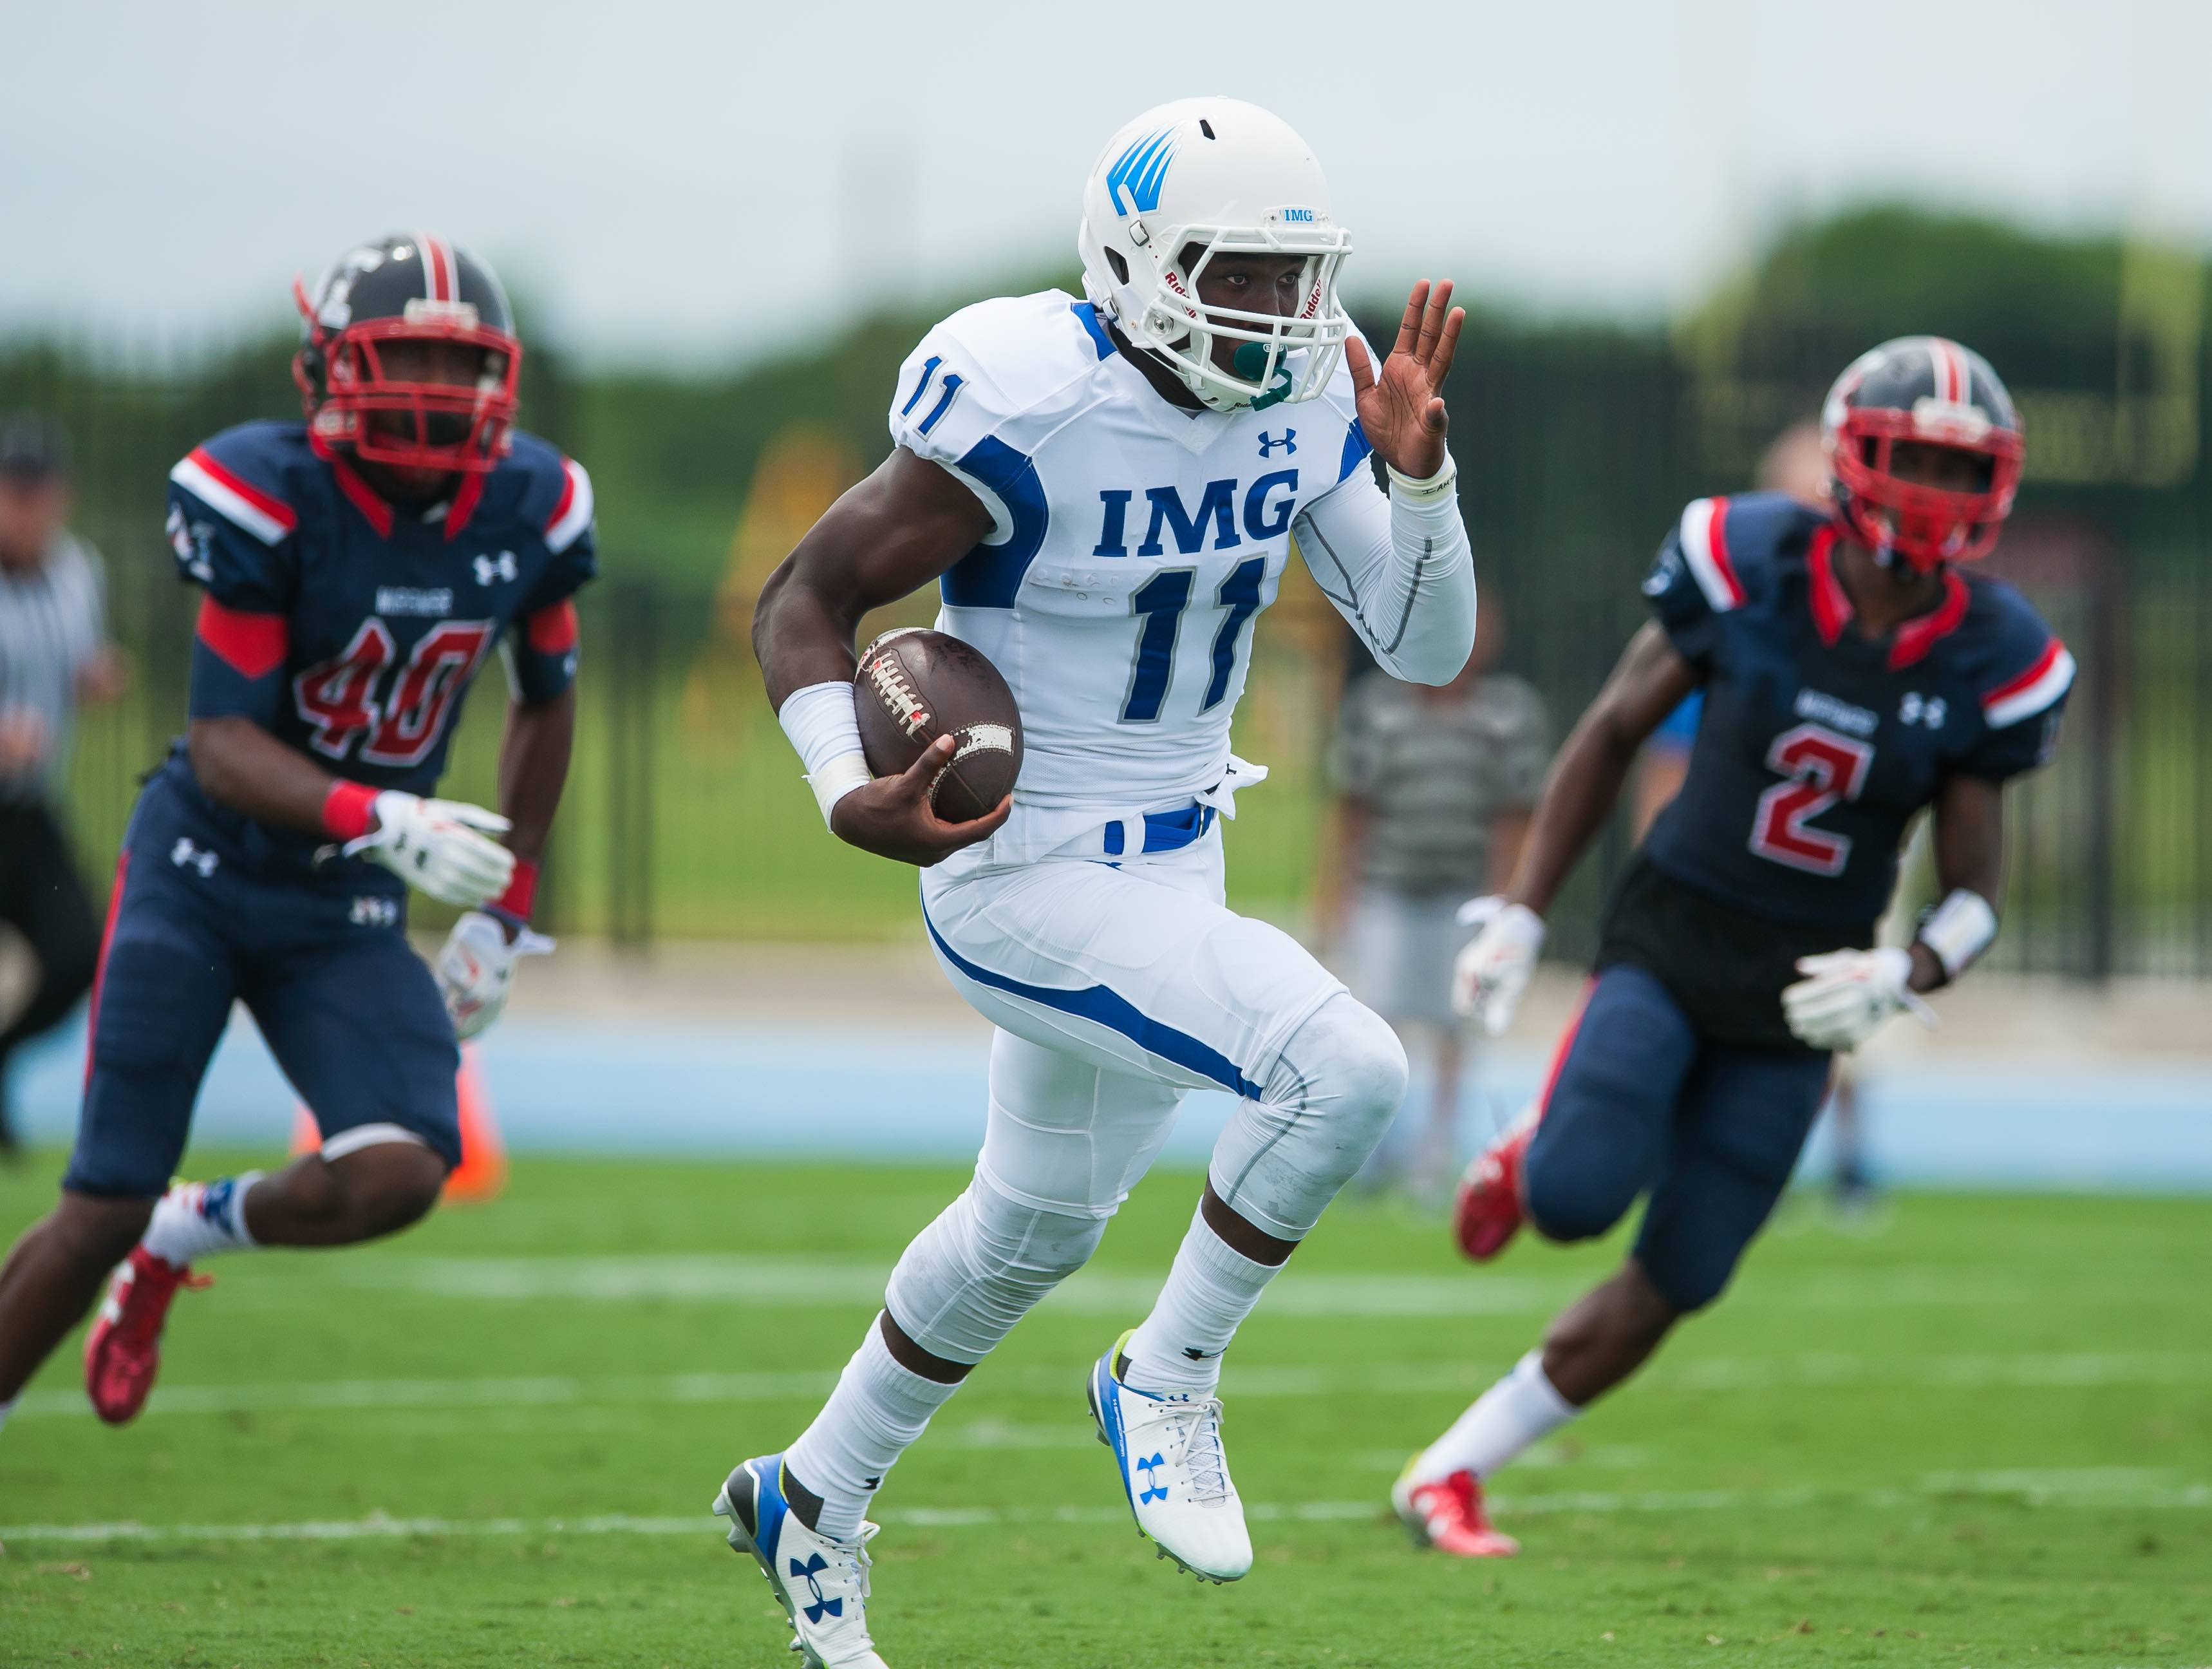 IMG Academy plays Miramar High School at IMG in Bradenton, Fla., on Sunday, August 30, 2015. IMG is the world's largest and most advanced multi-sport and education complex for youth, collegiate, professional and adult athletes. / (August 30, 2015; IMG Photo by Casey Brooke Lawson)